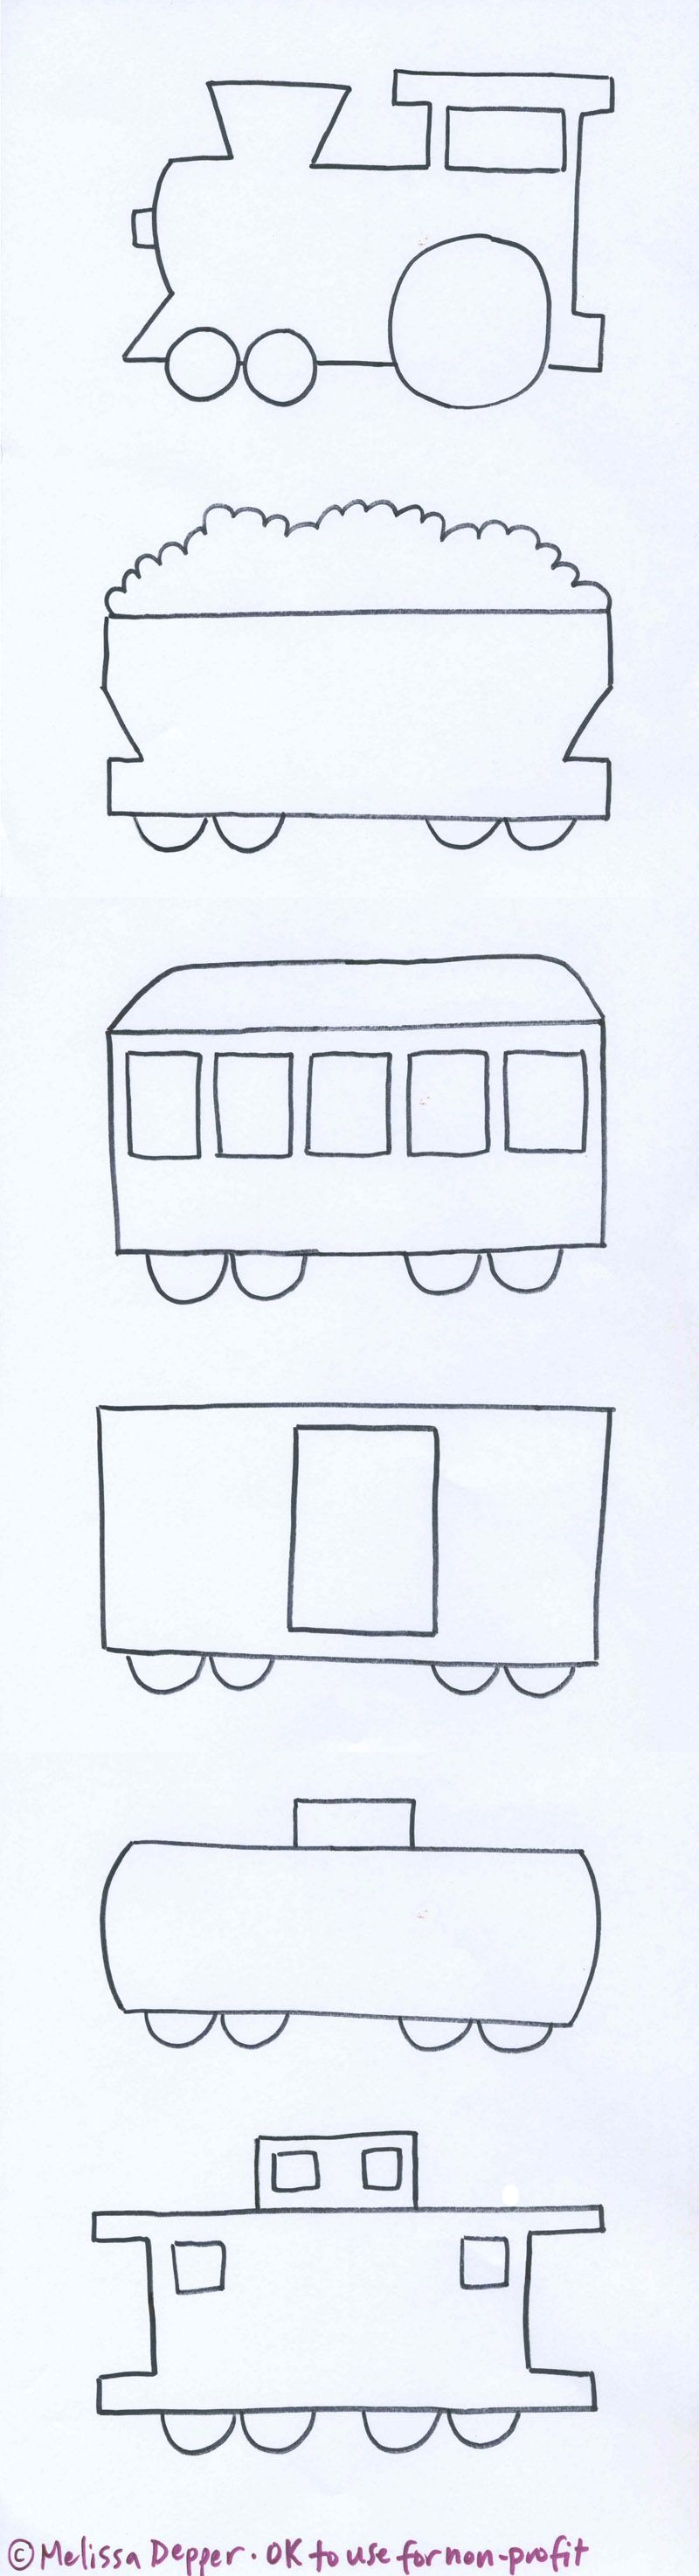 Train templates | Medios de transporte | Pinterest | Tren, Molde y ...